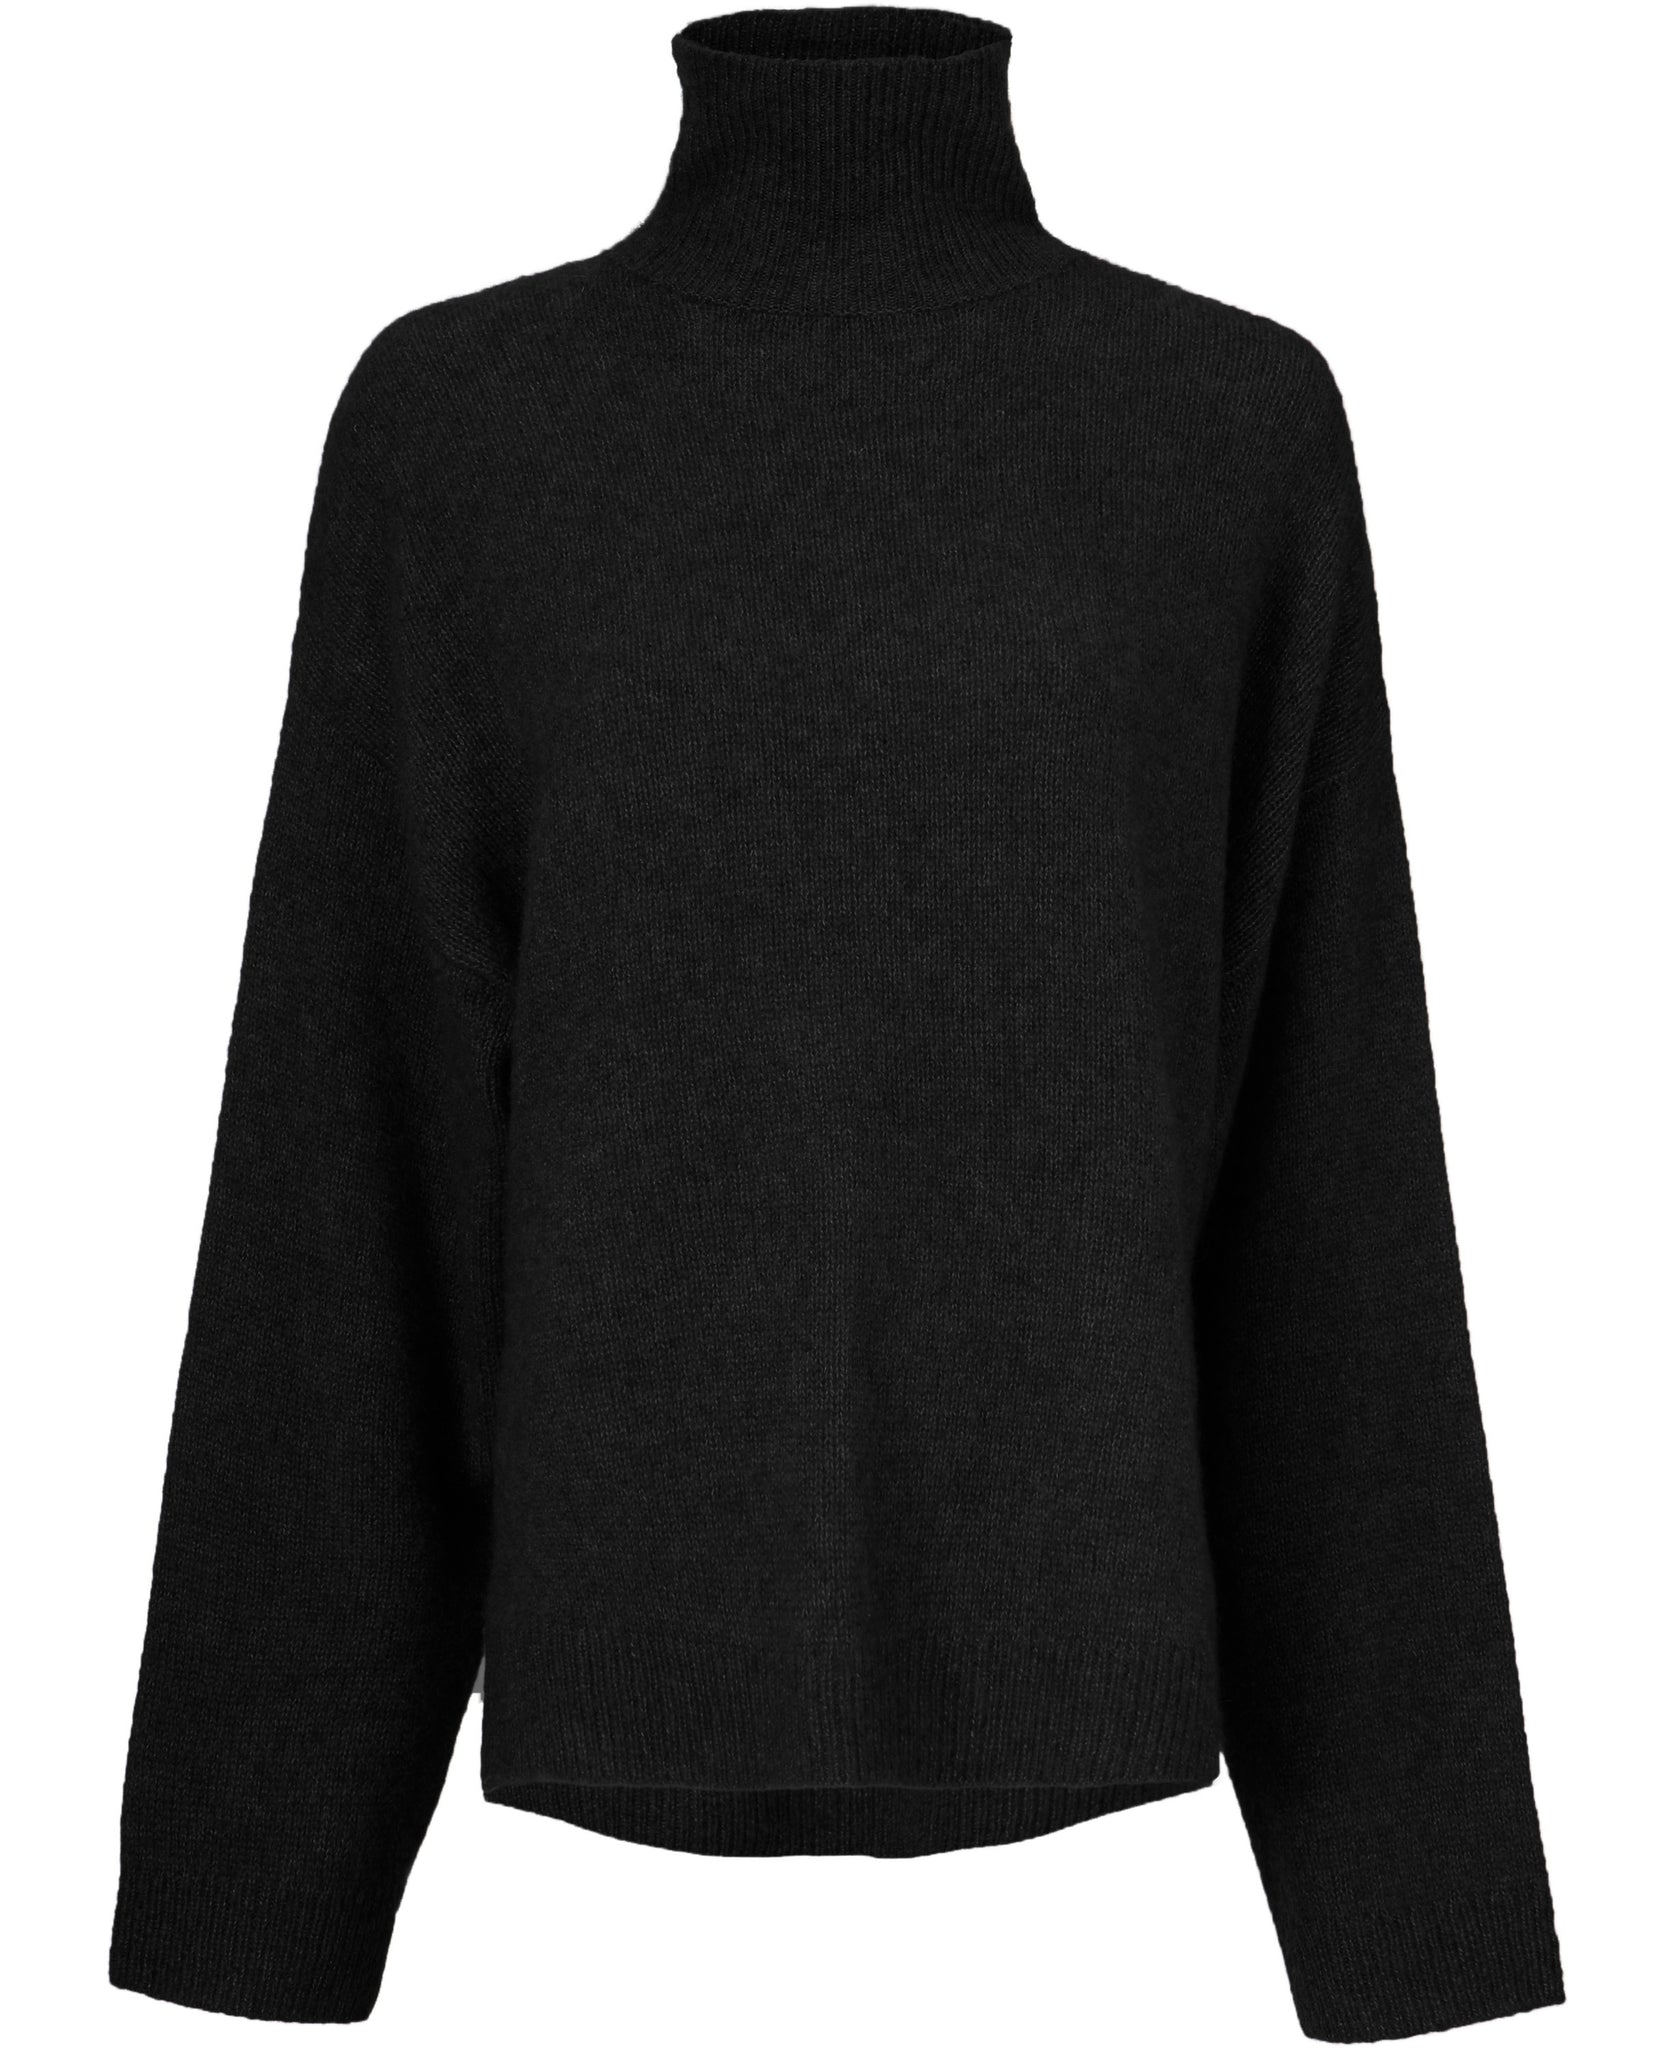 Bez Knit - Black - Silk/Cashmere